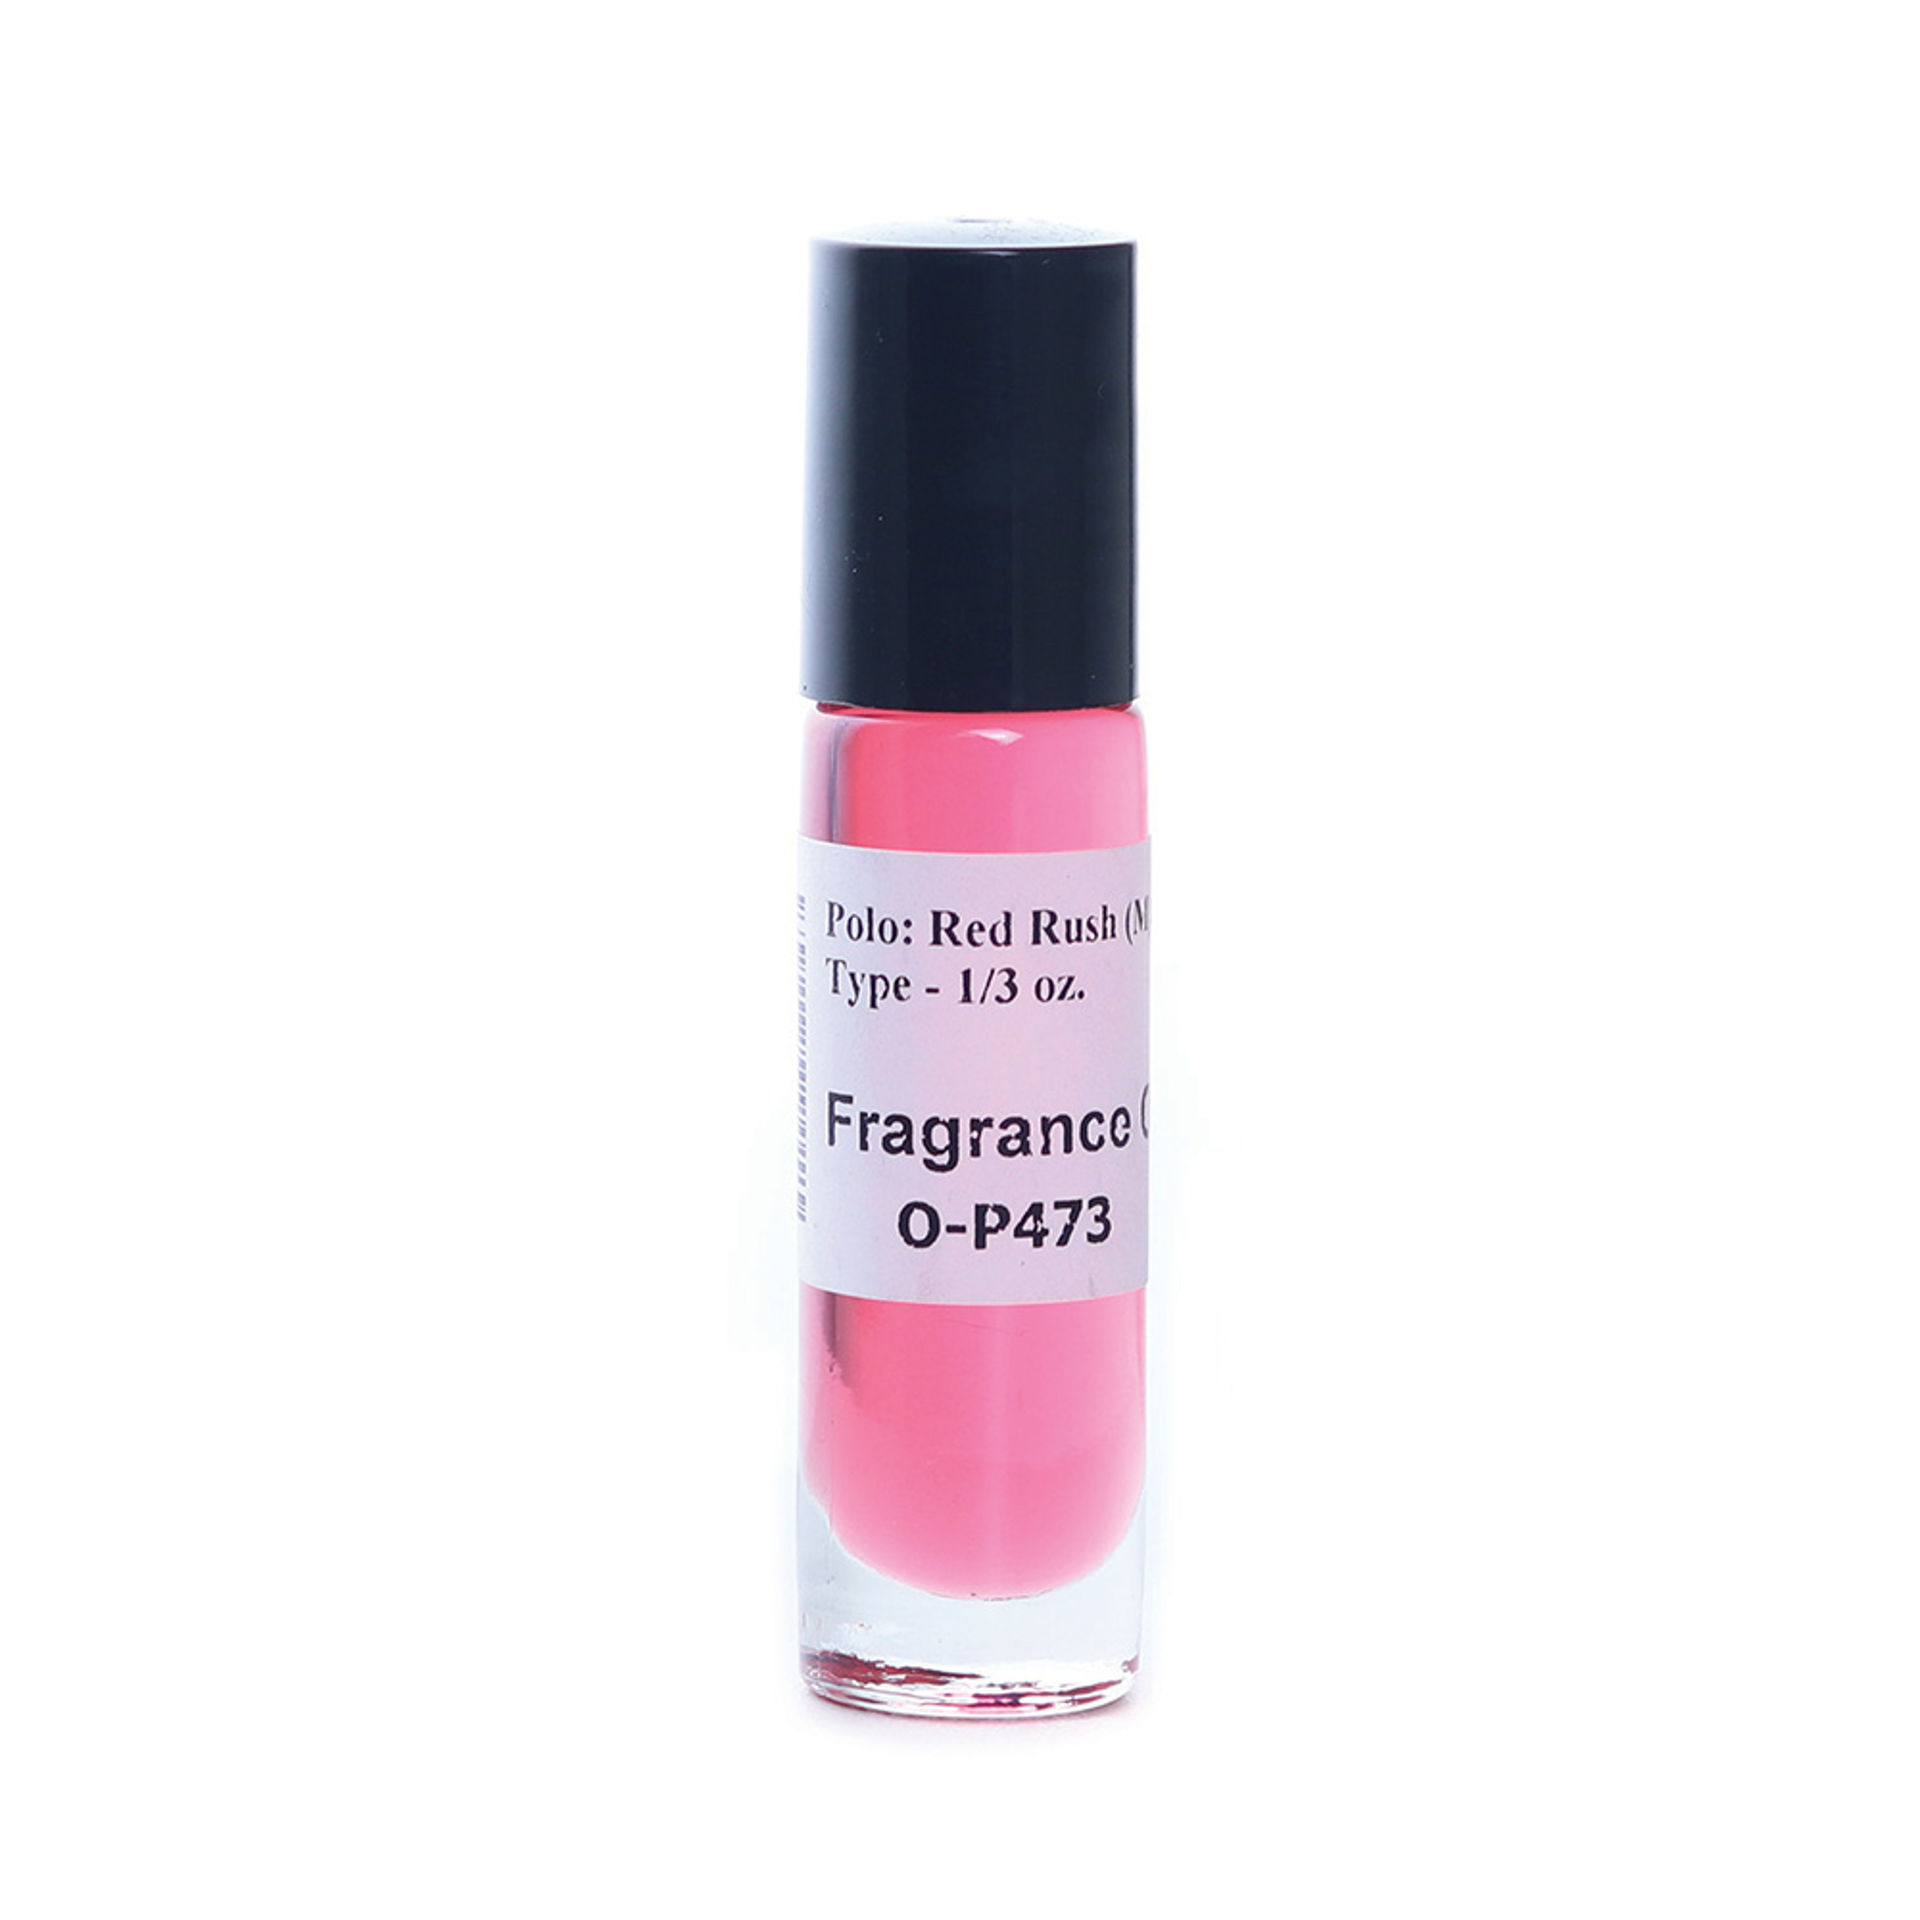 Picture of Polo: Red Rush (M) Type - 1/3 oz.